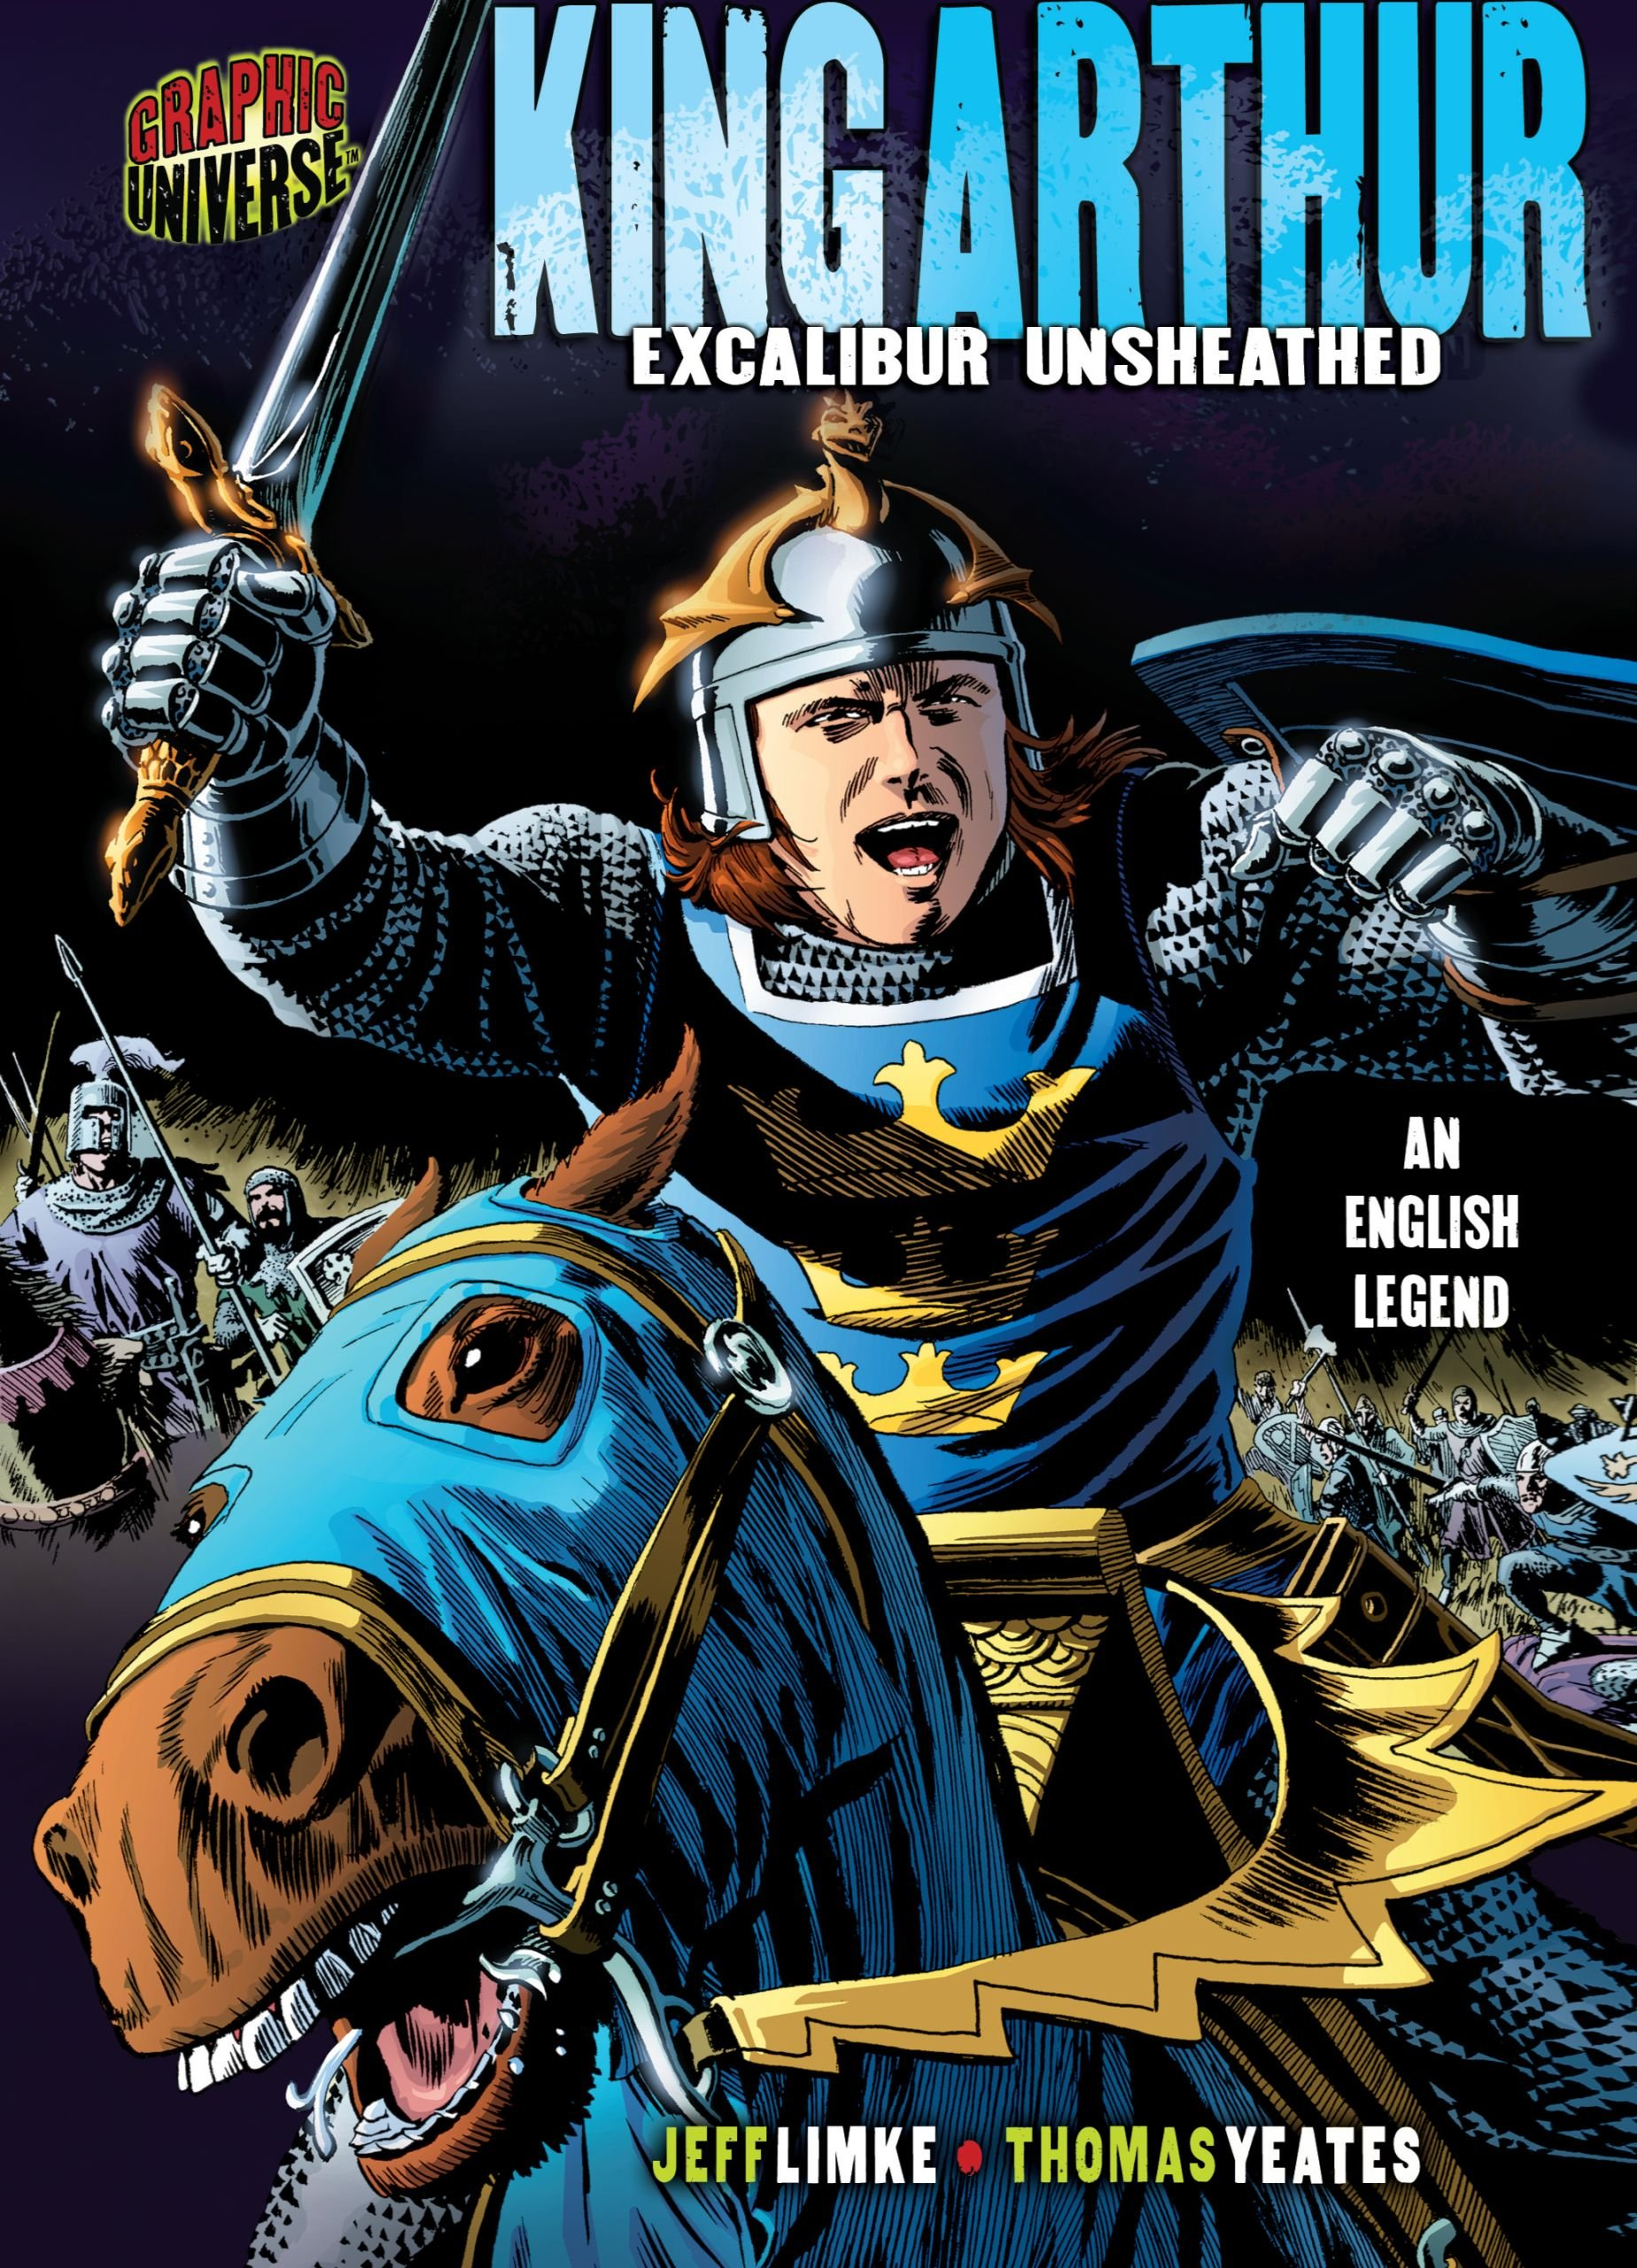 Download King Arthur: Excalibur Unsheathed: an English Legend (Graphic Myths and Legends) ebook